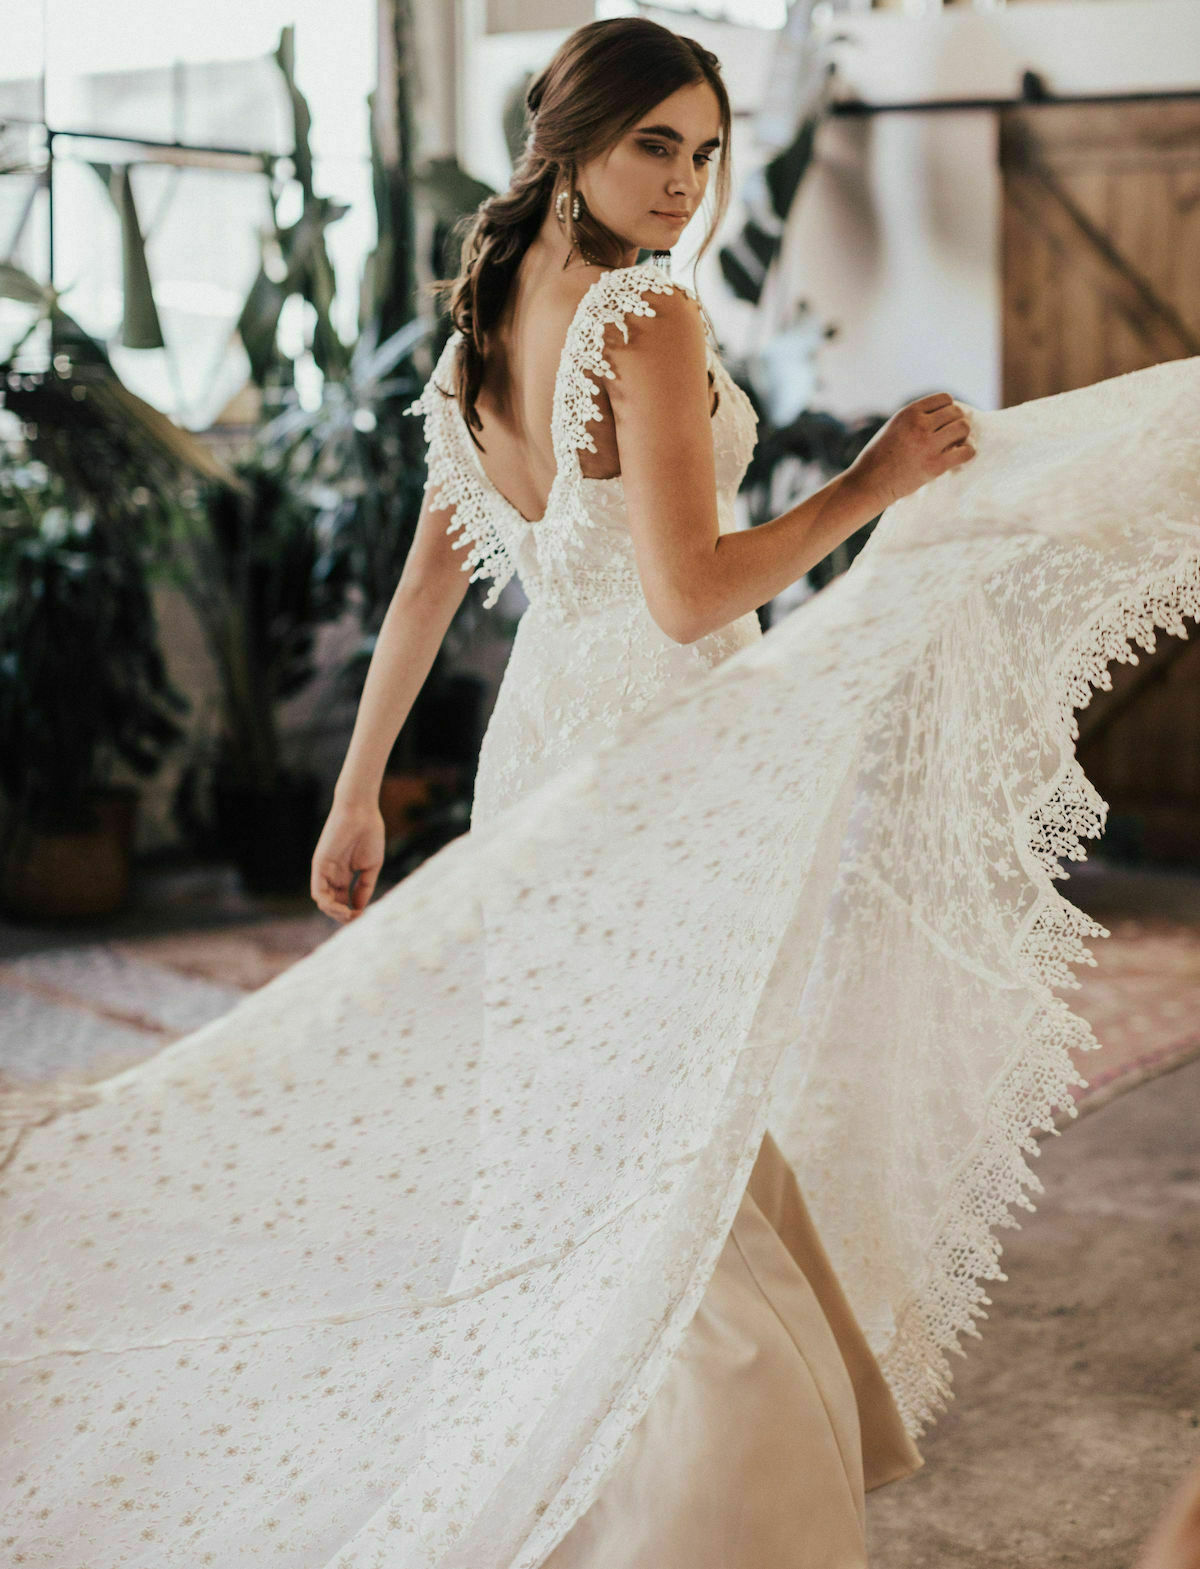 Discovertheperlasimpleweddingdresscraftedfrom: Simple Cotton Lace Wedding Dress At Reisefeber.org